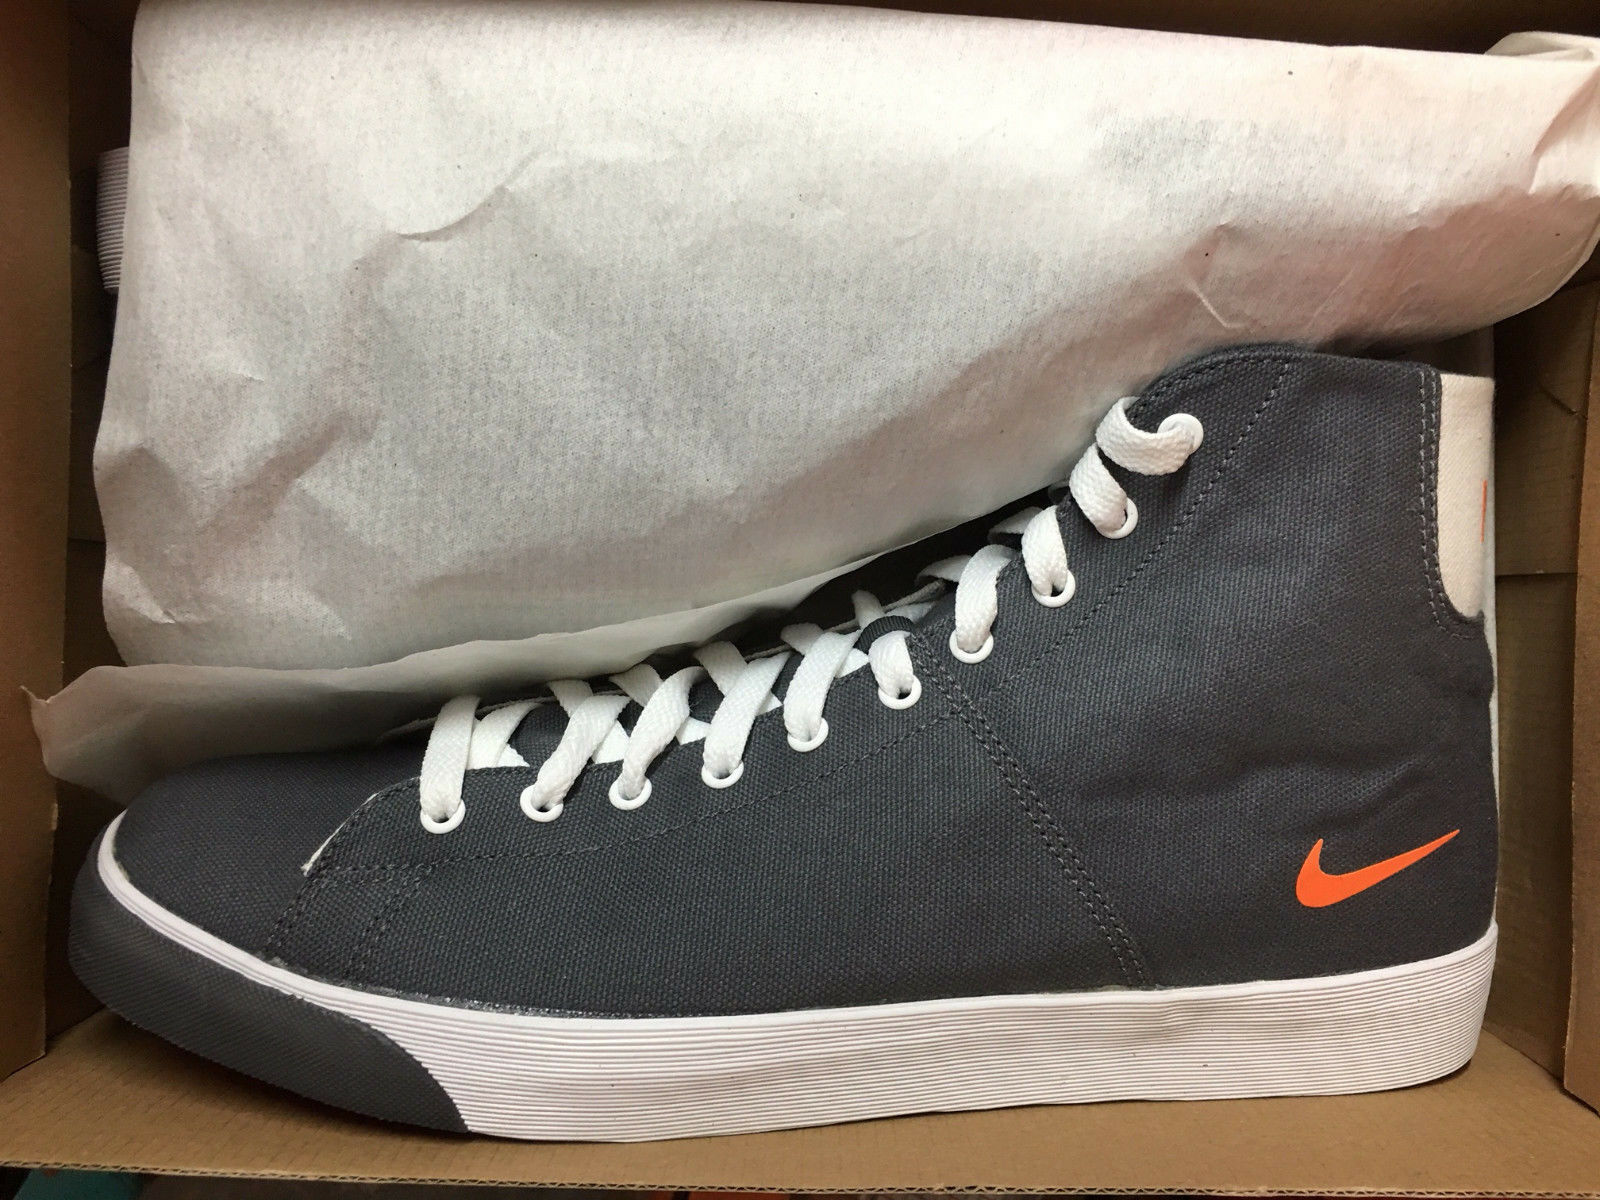 NIKE Player Canvas Textil High Hoch Neu Gr:46 US:12 Sommer Stiefel Sneaker